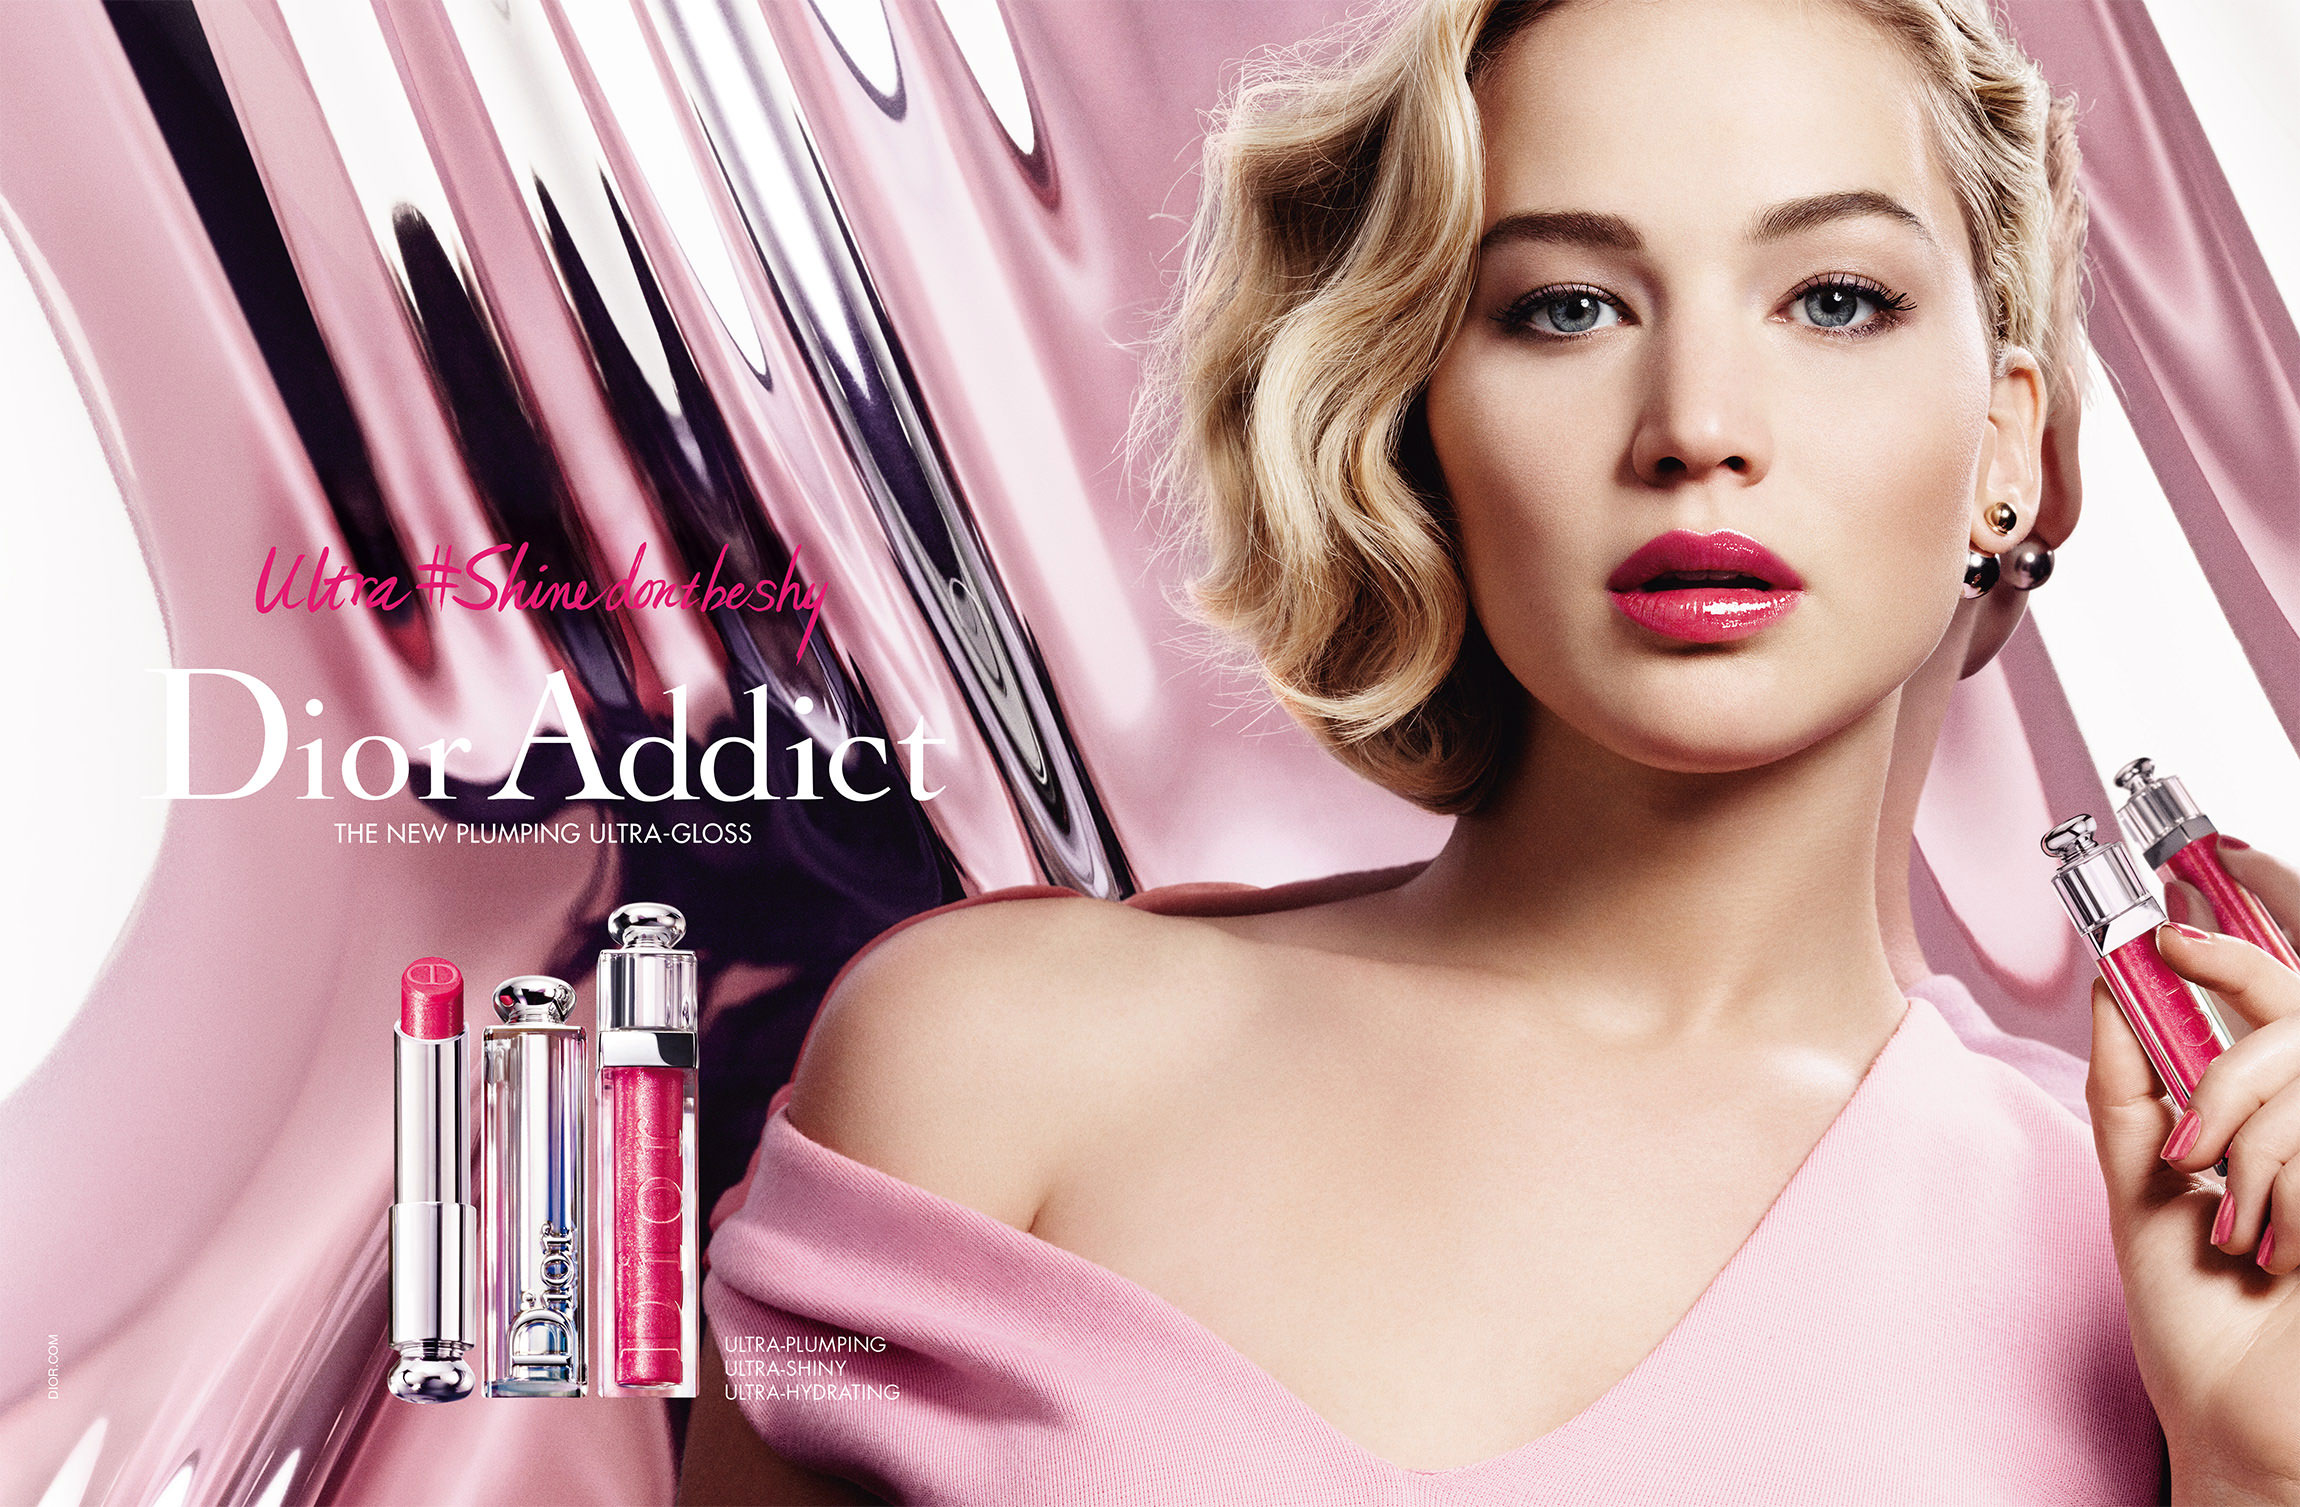 Dior Addict 215 additionally 288 Dior Addict De Christian Dior Edp 100 Ml34 Oz Para Mujer in addition Jennifer Lawrence also Eau De Parfum moreover Dior Addict. on dior addict perfume